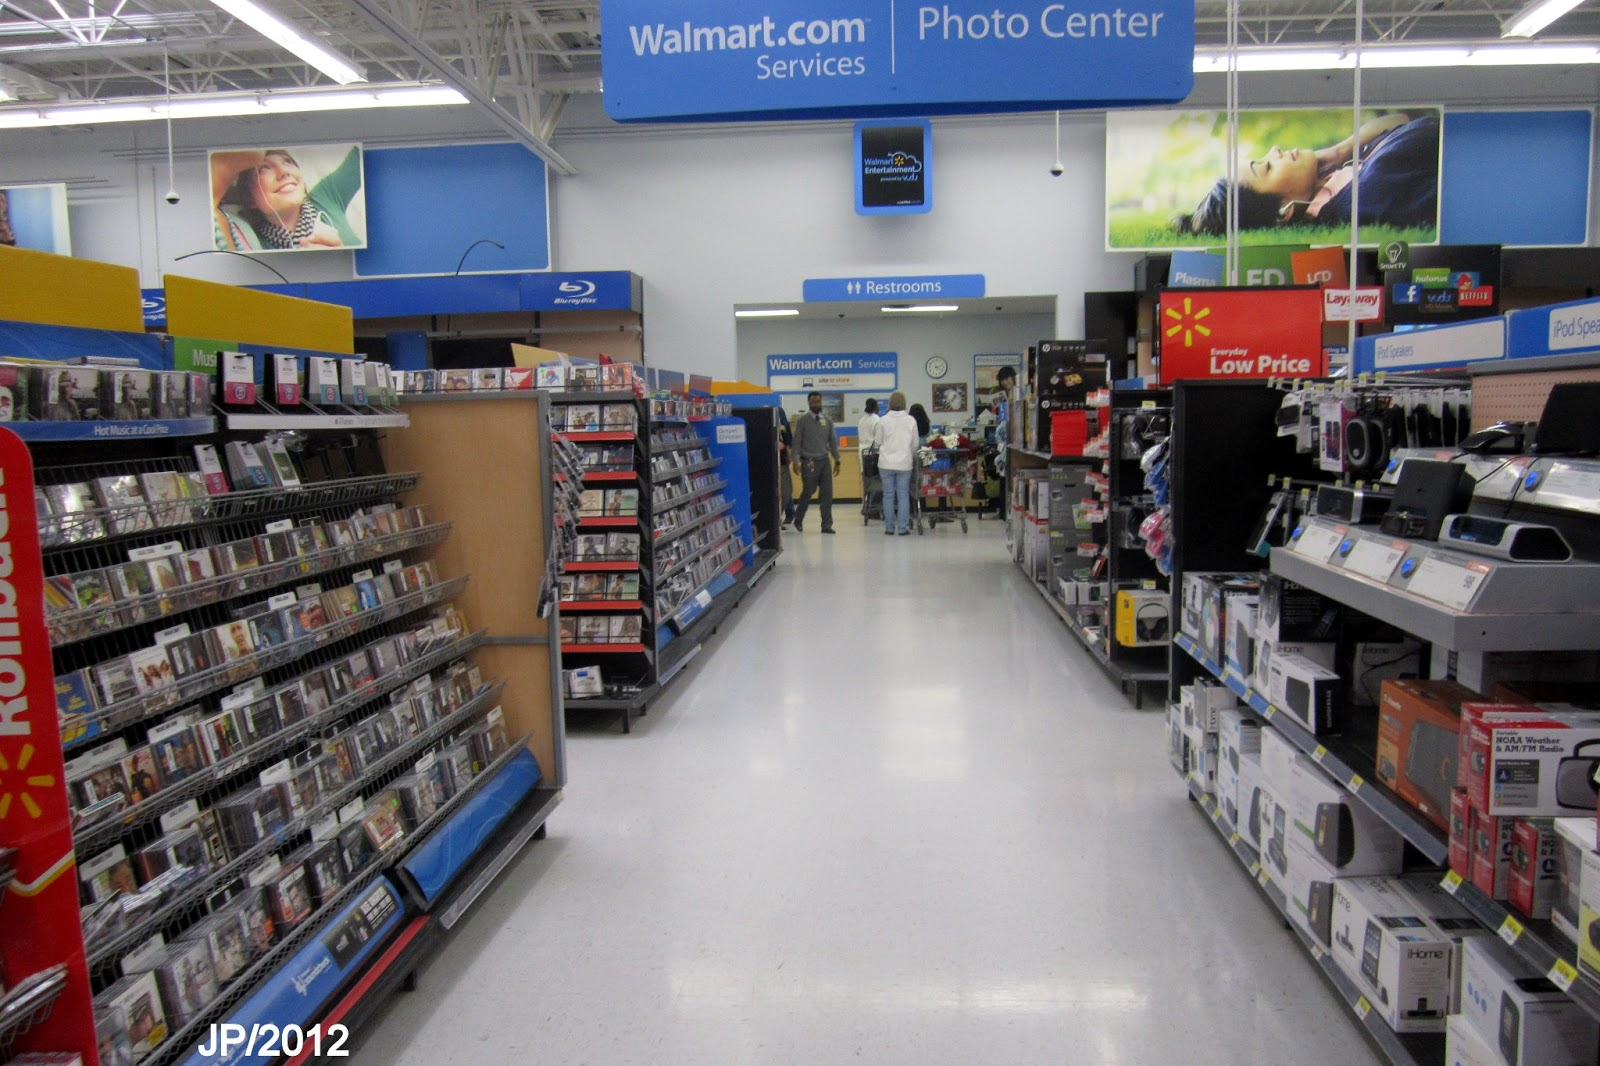 walmat Walmartcom 32m likes walmartcom is a lot like your neighborhood walmart store we feature a great selection of high-quality merchandise at everyday.